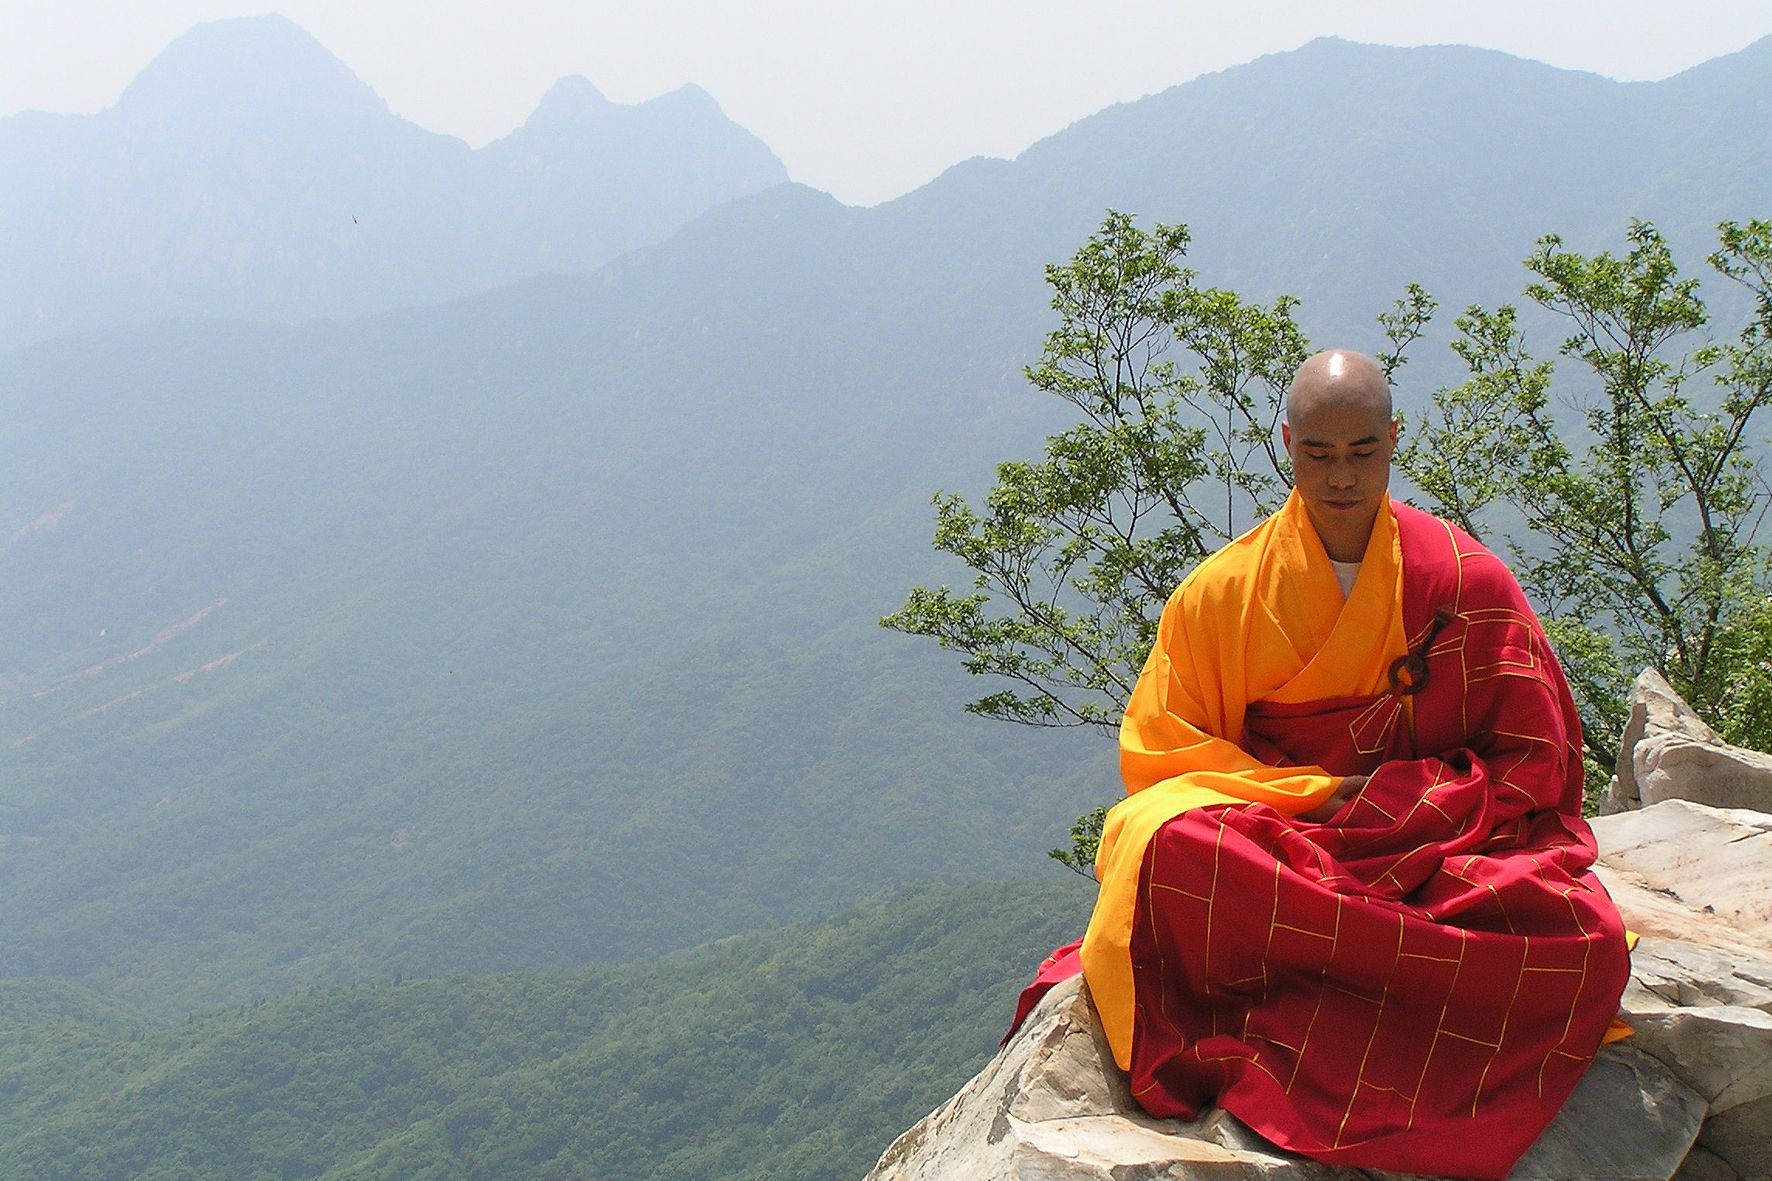 A Shaolin Monk in meditation practise with full robes.